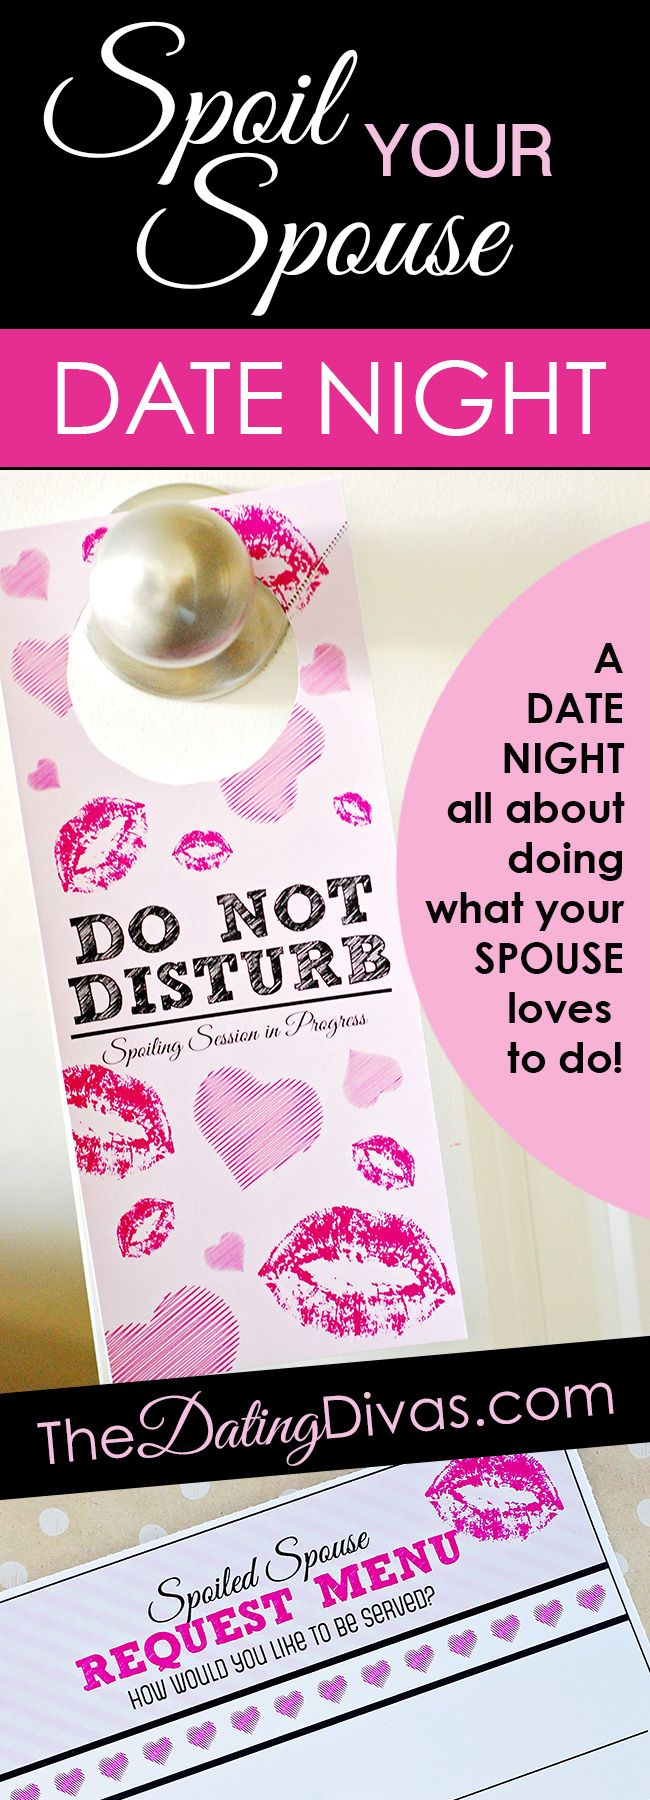 This date night is all about doing what your SPOUSE loves to do! This is perfect for his birthday or for an anniversary! www.TheDatingDivas.com